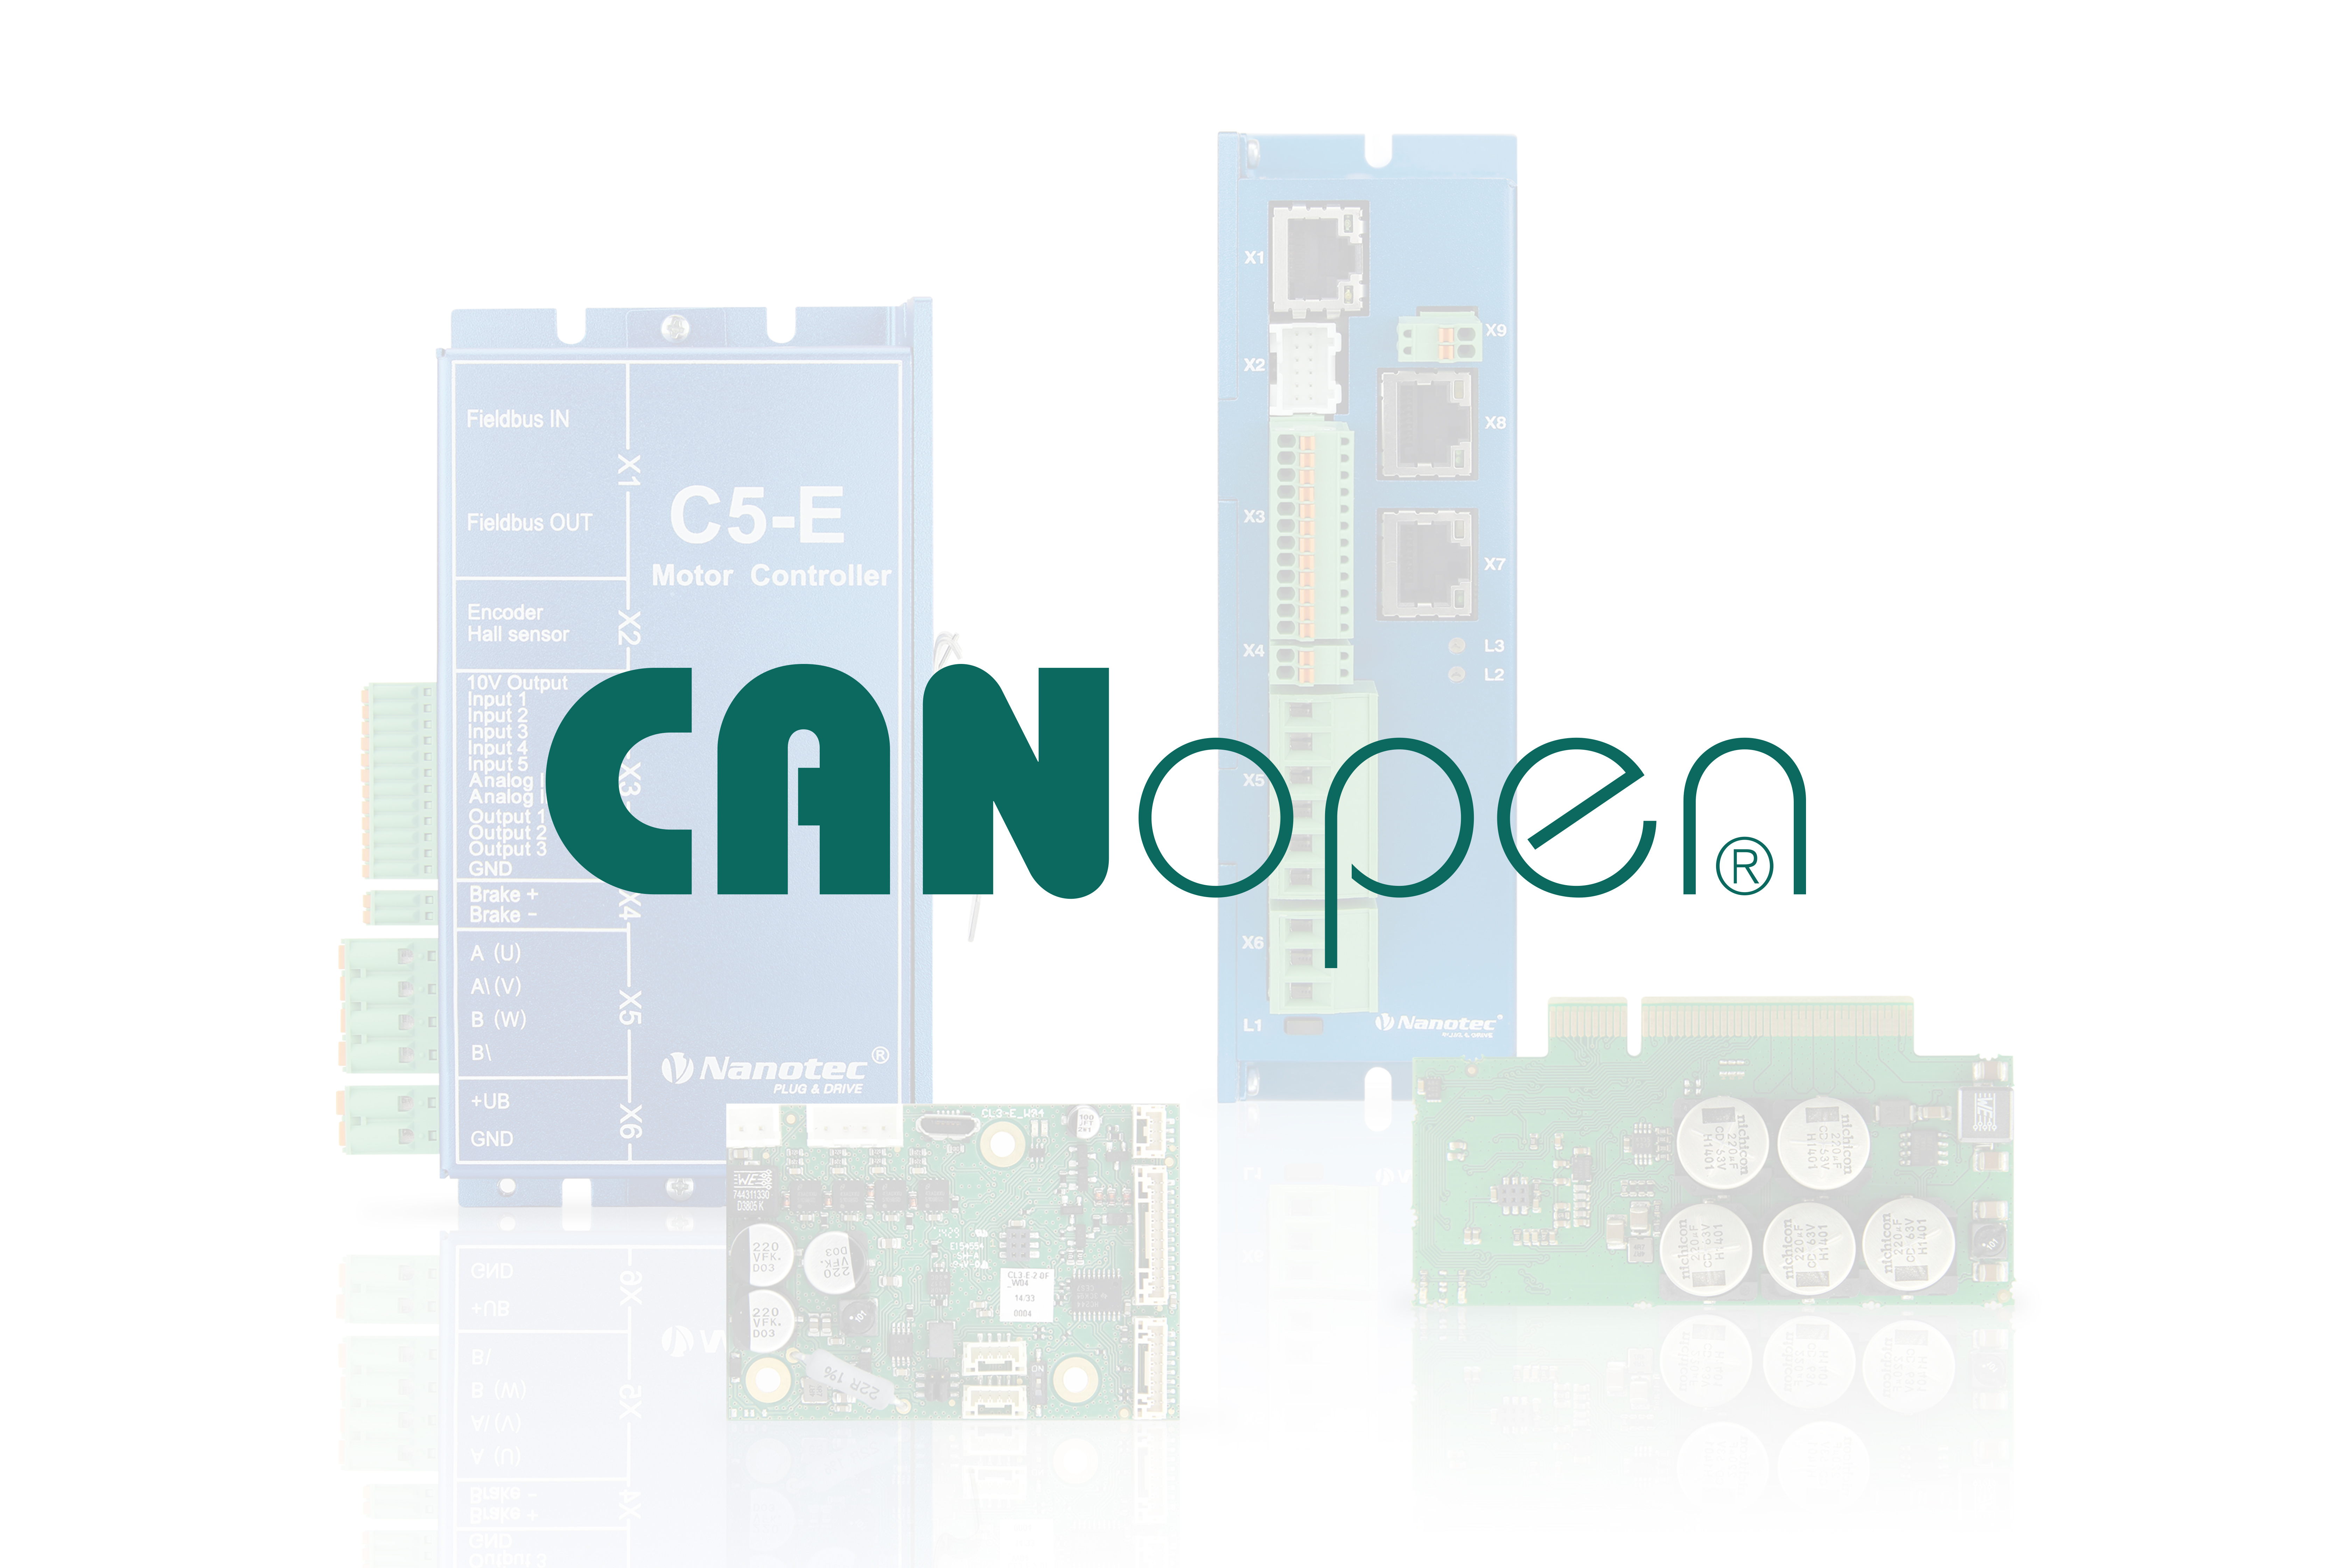 controller with canopen